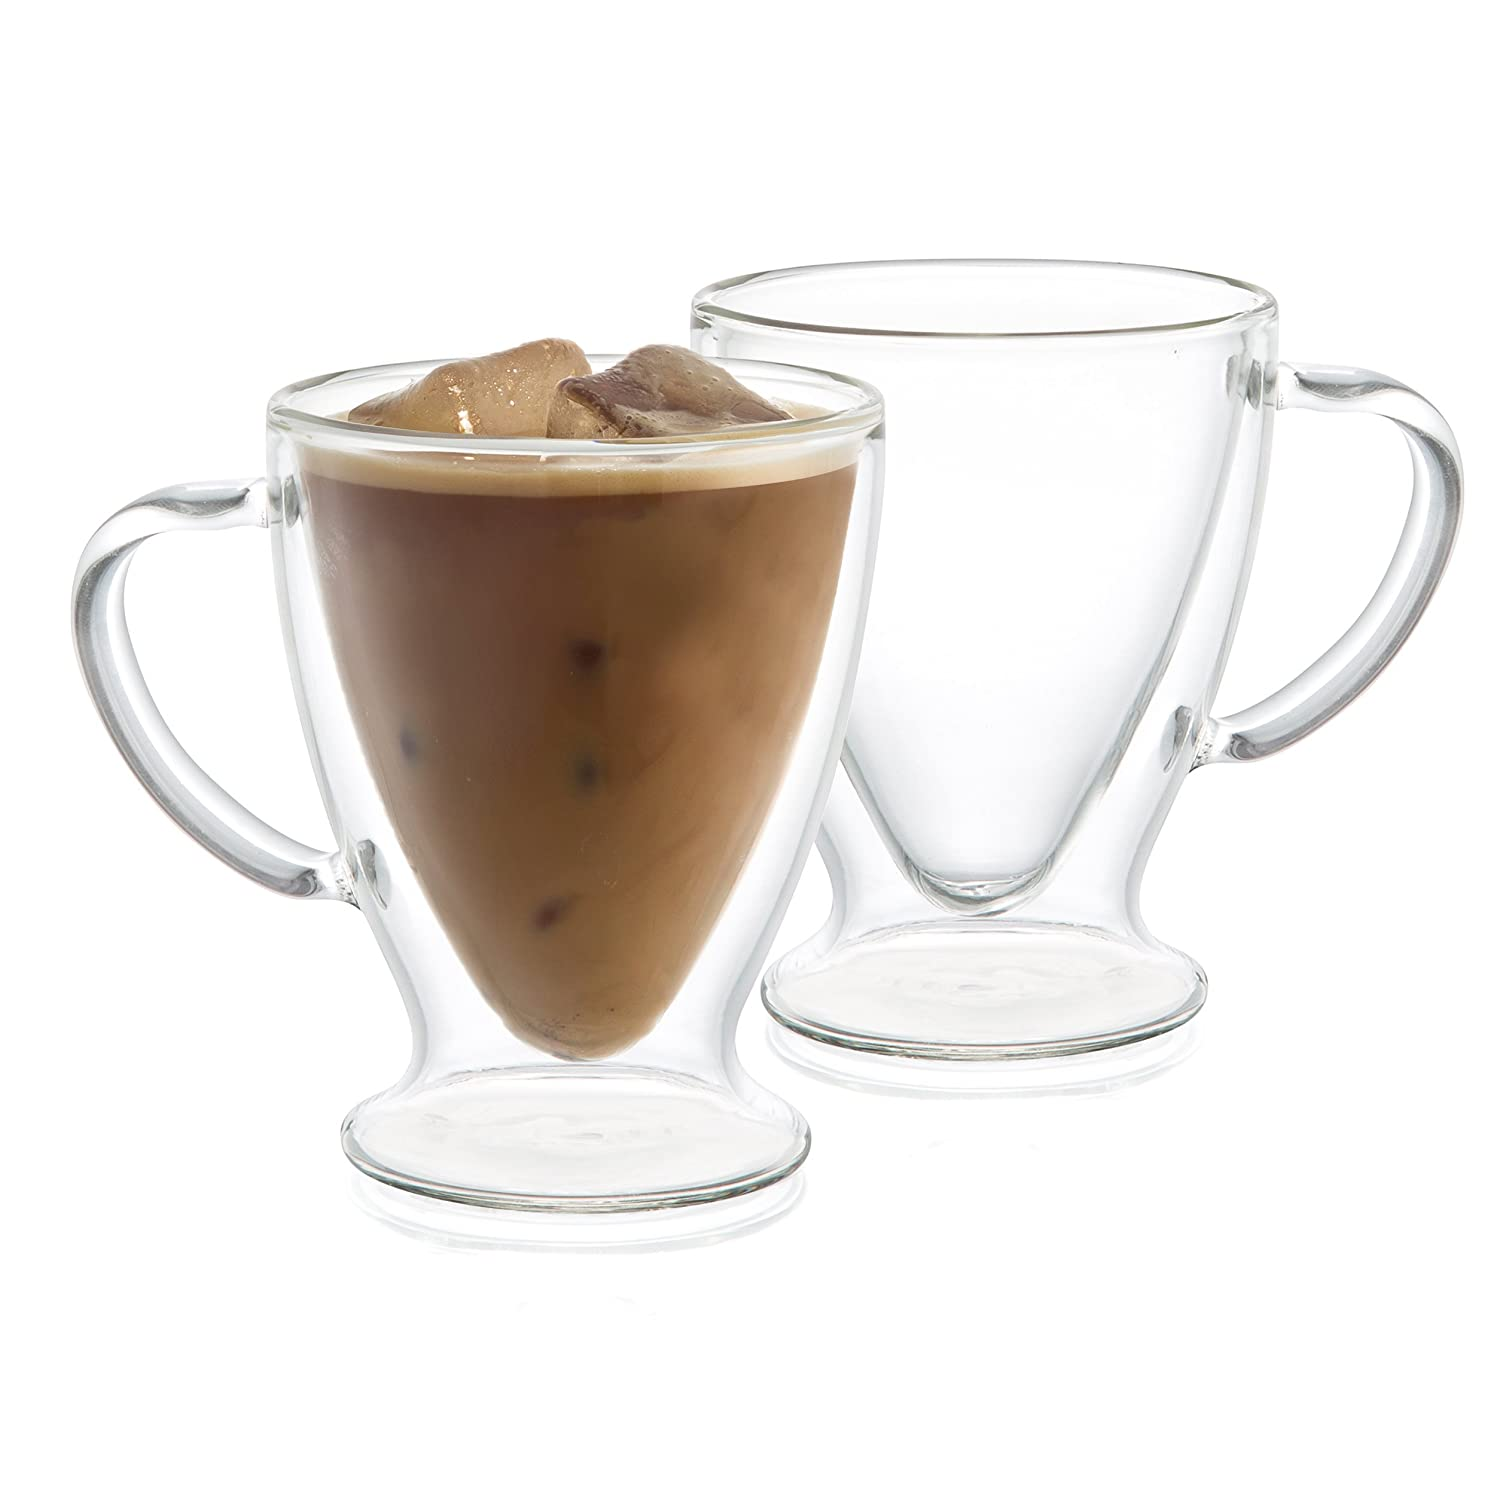 JoyJolt Declan Irish Glass Coffee Cups Double Wall Insulated Mugs Set of 2 Latte Glasses, 10-Ounces. JG10232